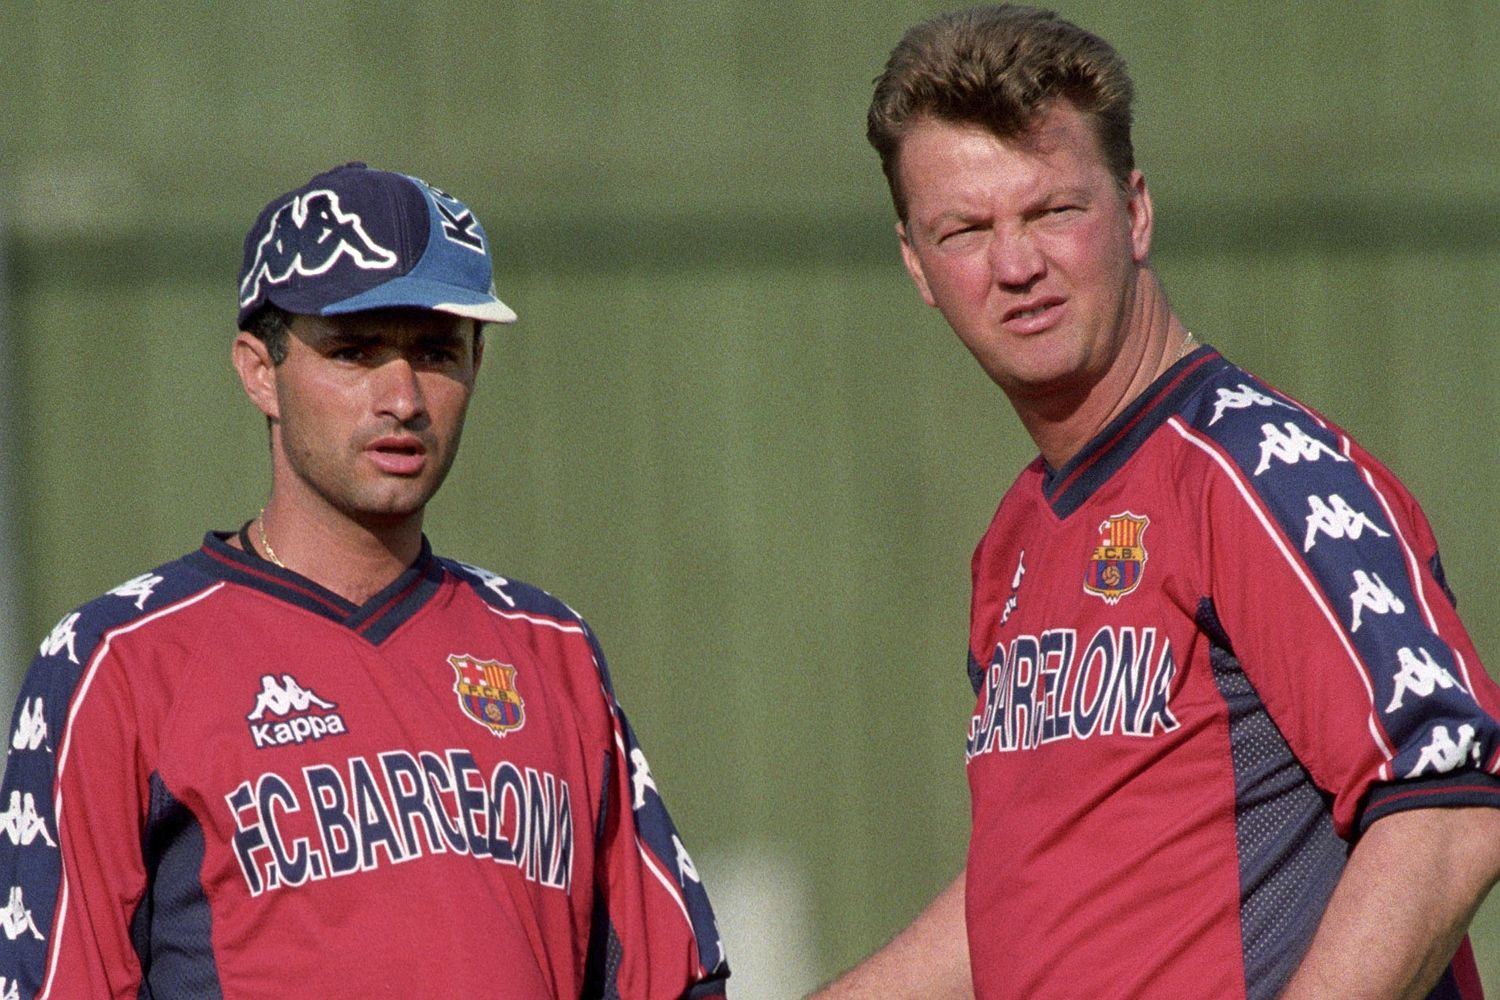 Jose Mourinho and Louis van Gaal worked together at Barcelona in the late 1990s